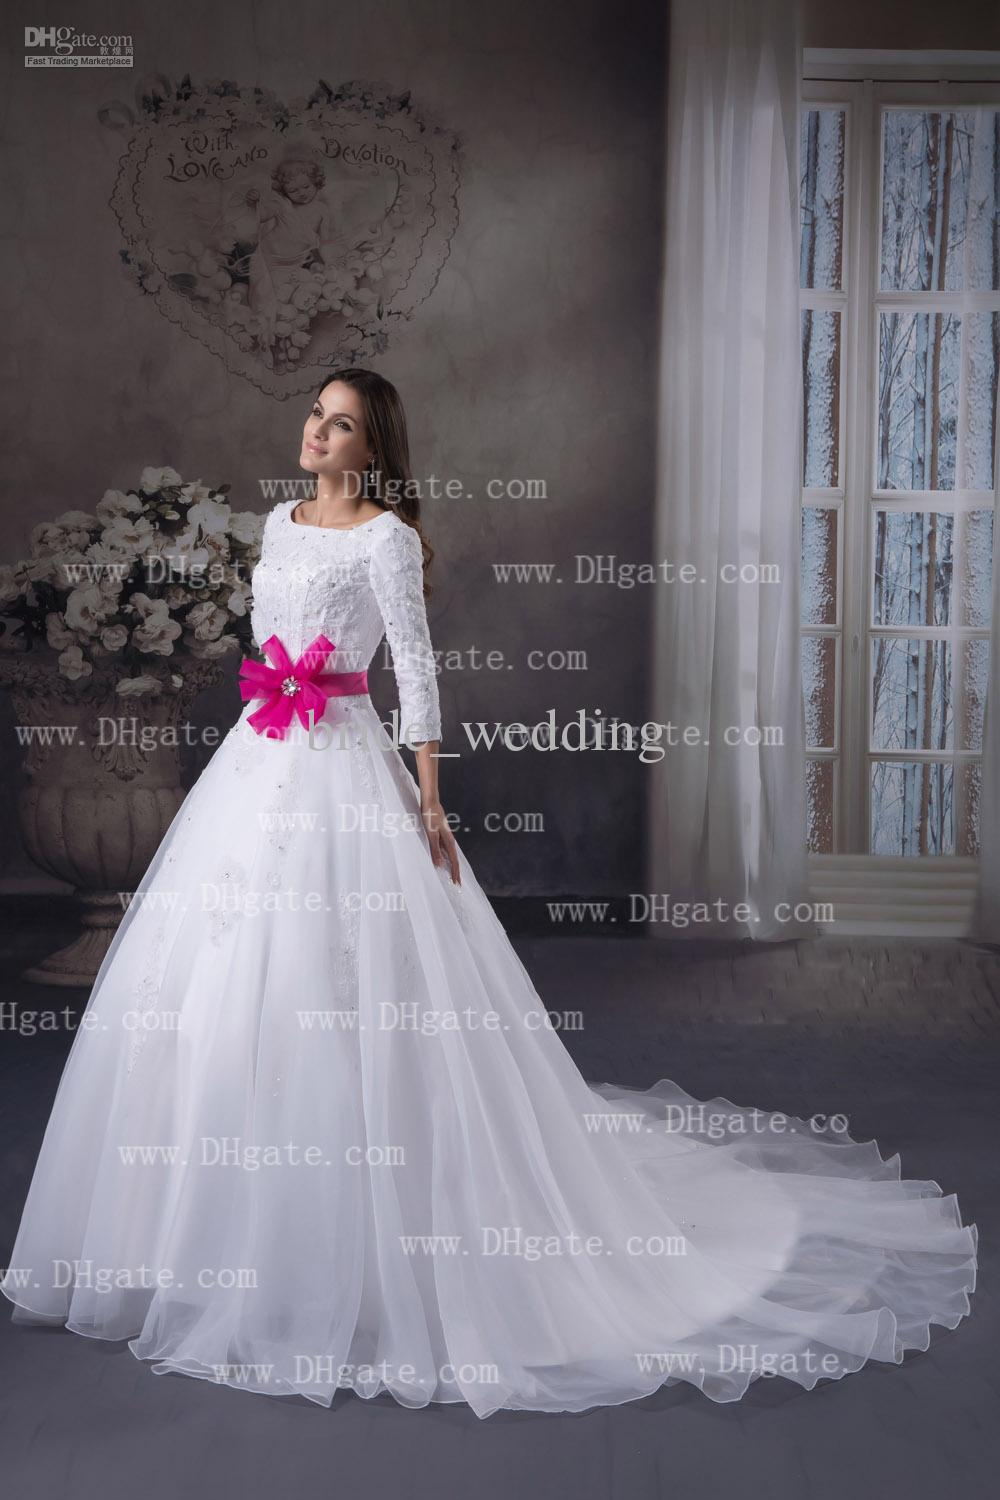 Gallery of wedding dress february 2014 for White with pink wedding dresses